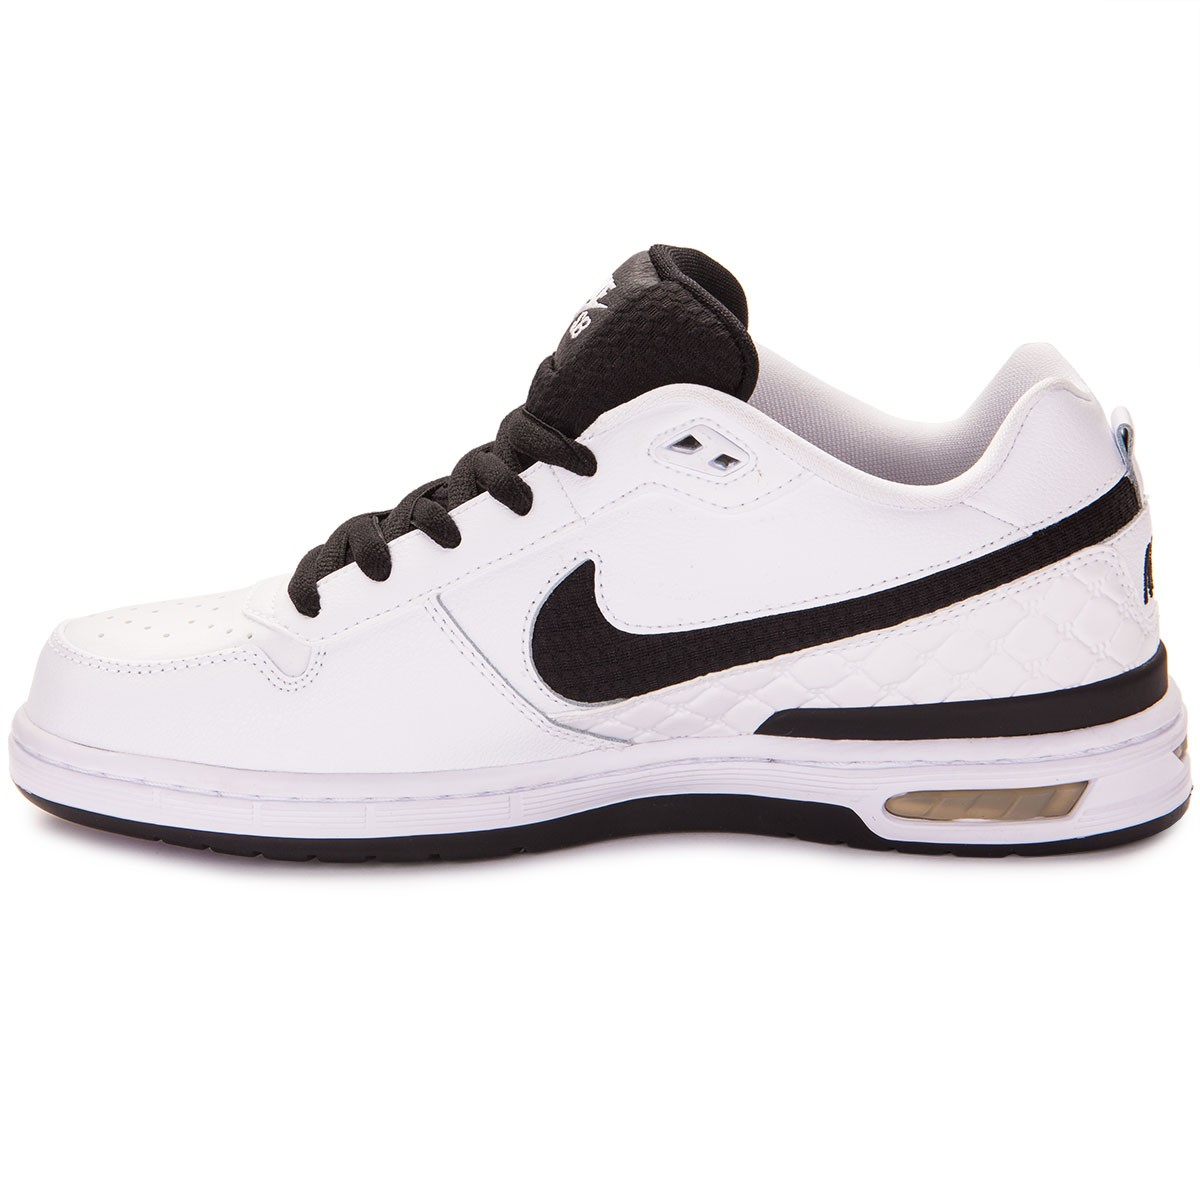 fea58c2fa4d Nike Paul Rodriguez Zoom Air Low Shoes - White Grey Black - 6.0